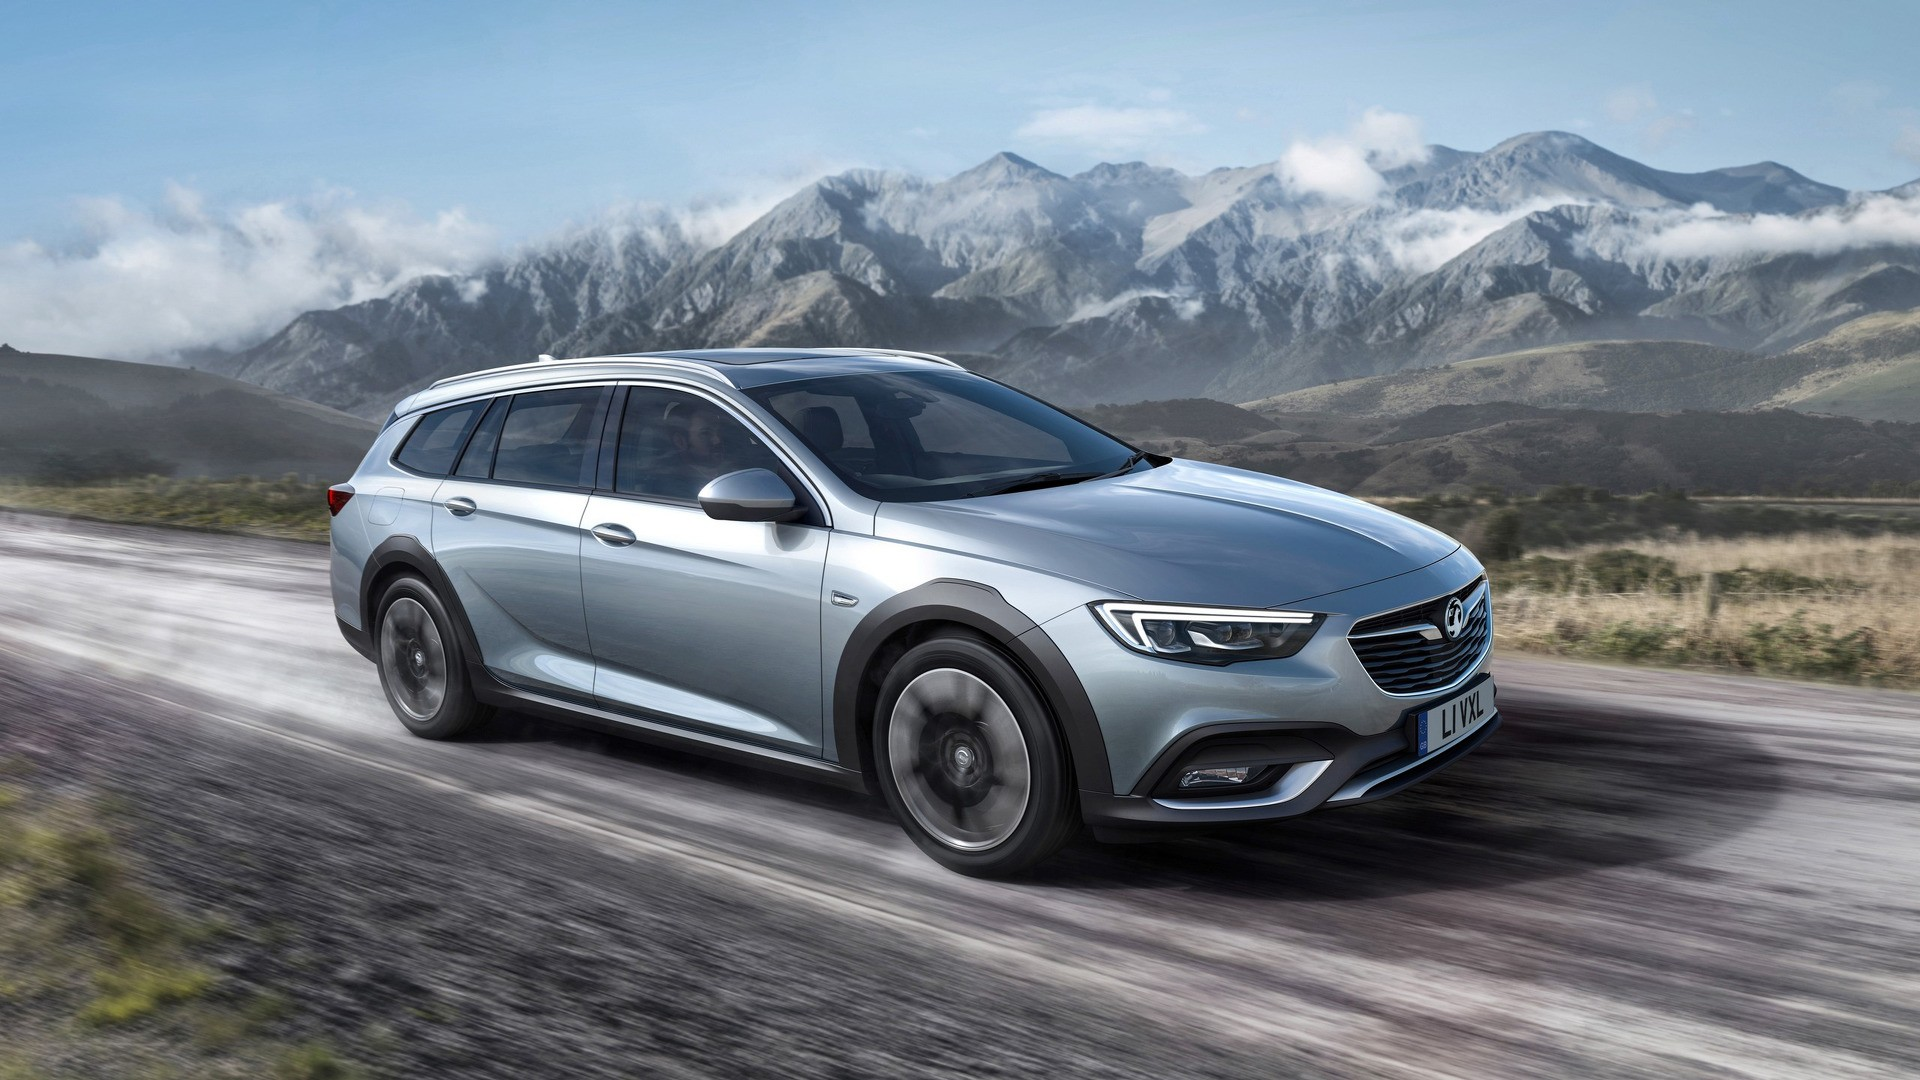 opel reveals all new 2018 insignia country tourer will debut in frankfurt autoevolution. Black Bedroom Furniture Sets. Home Design Ideas